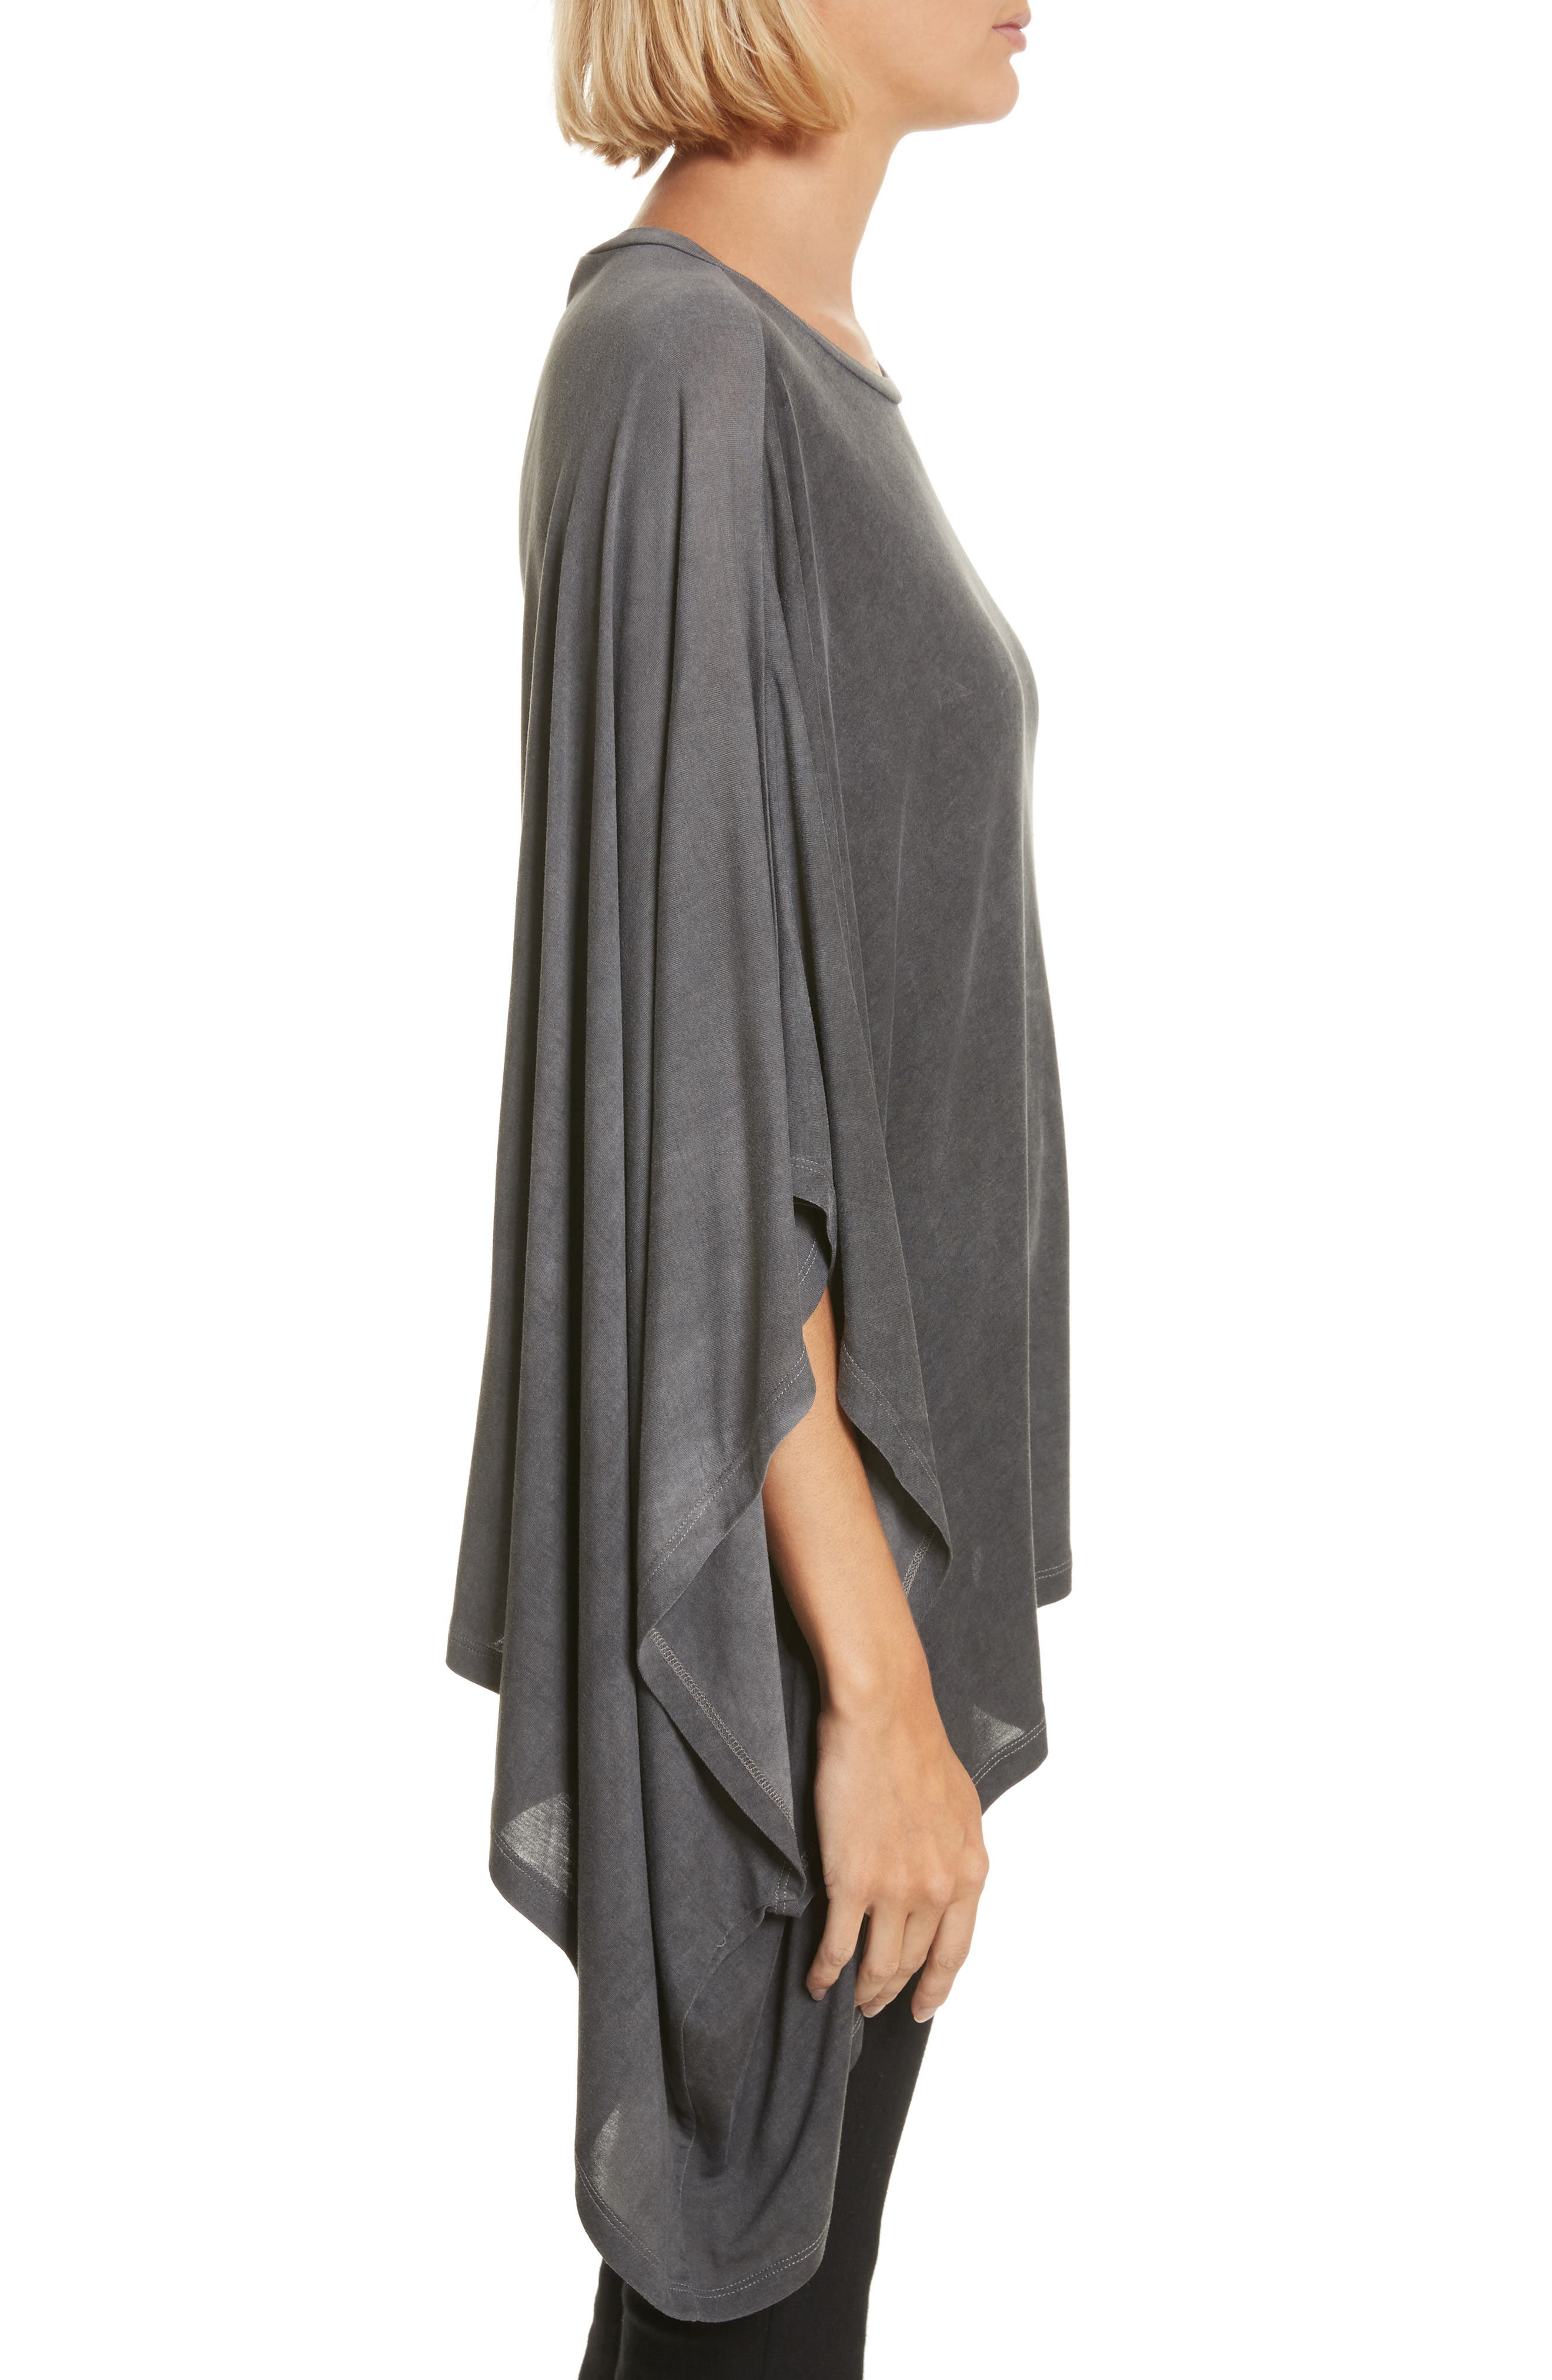 Eloaz Asymmetrical Draped Top,                             Alternate thumbnail 3, color,                             Charcoal